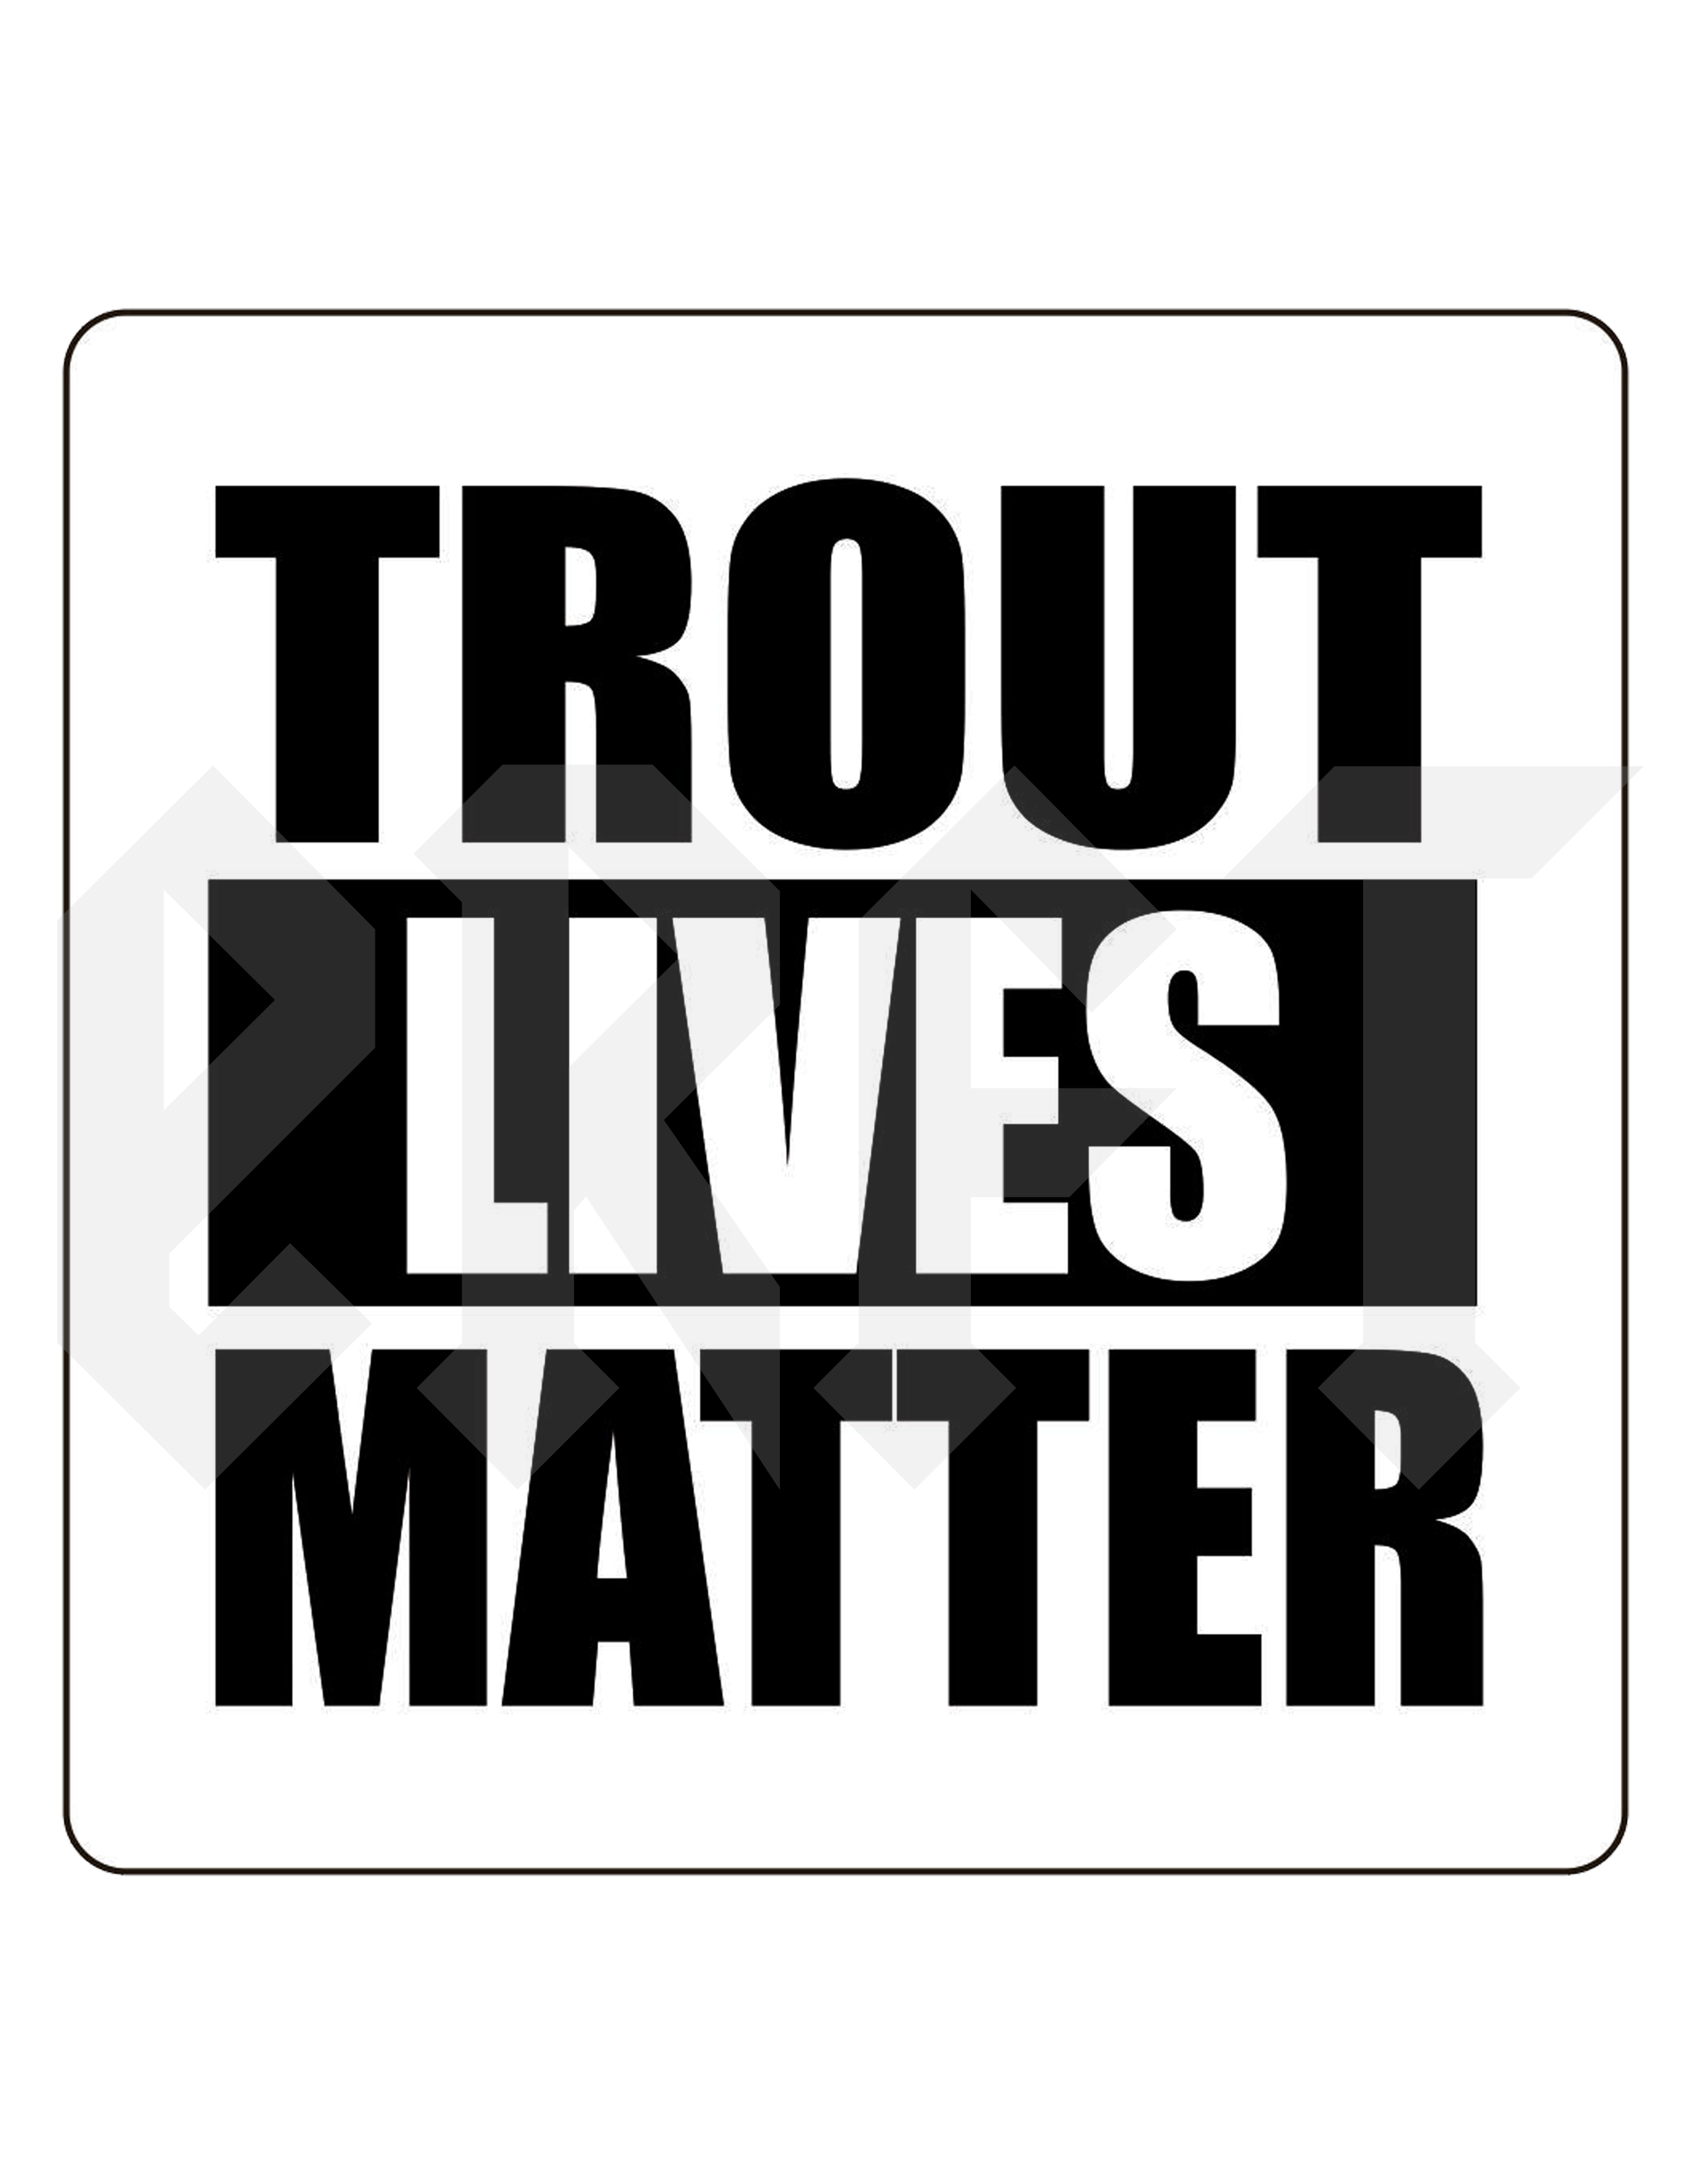 Trout clipart shadow. Lives matter sticker east